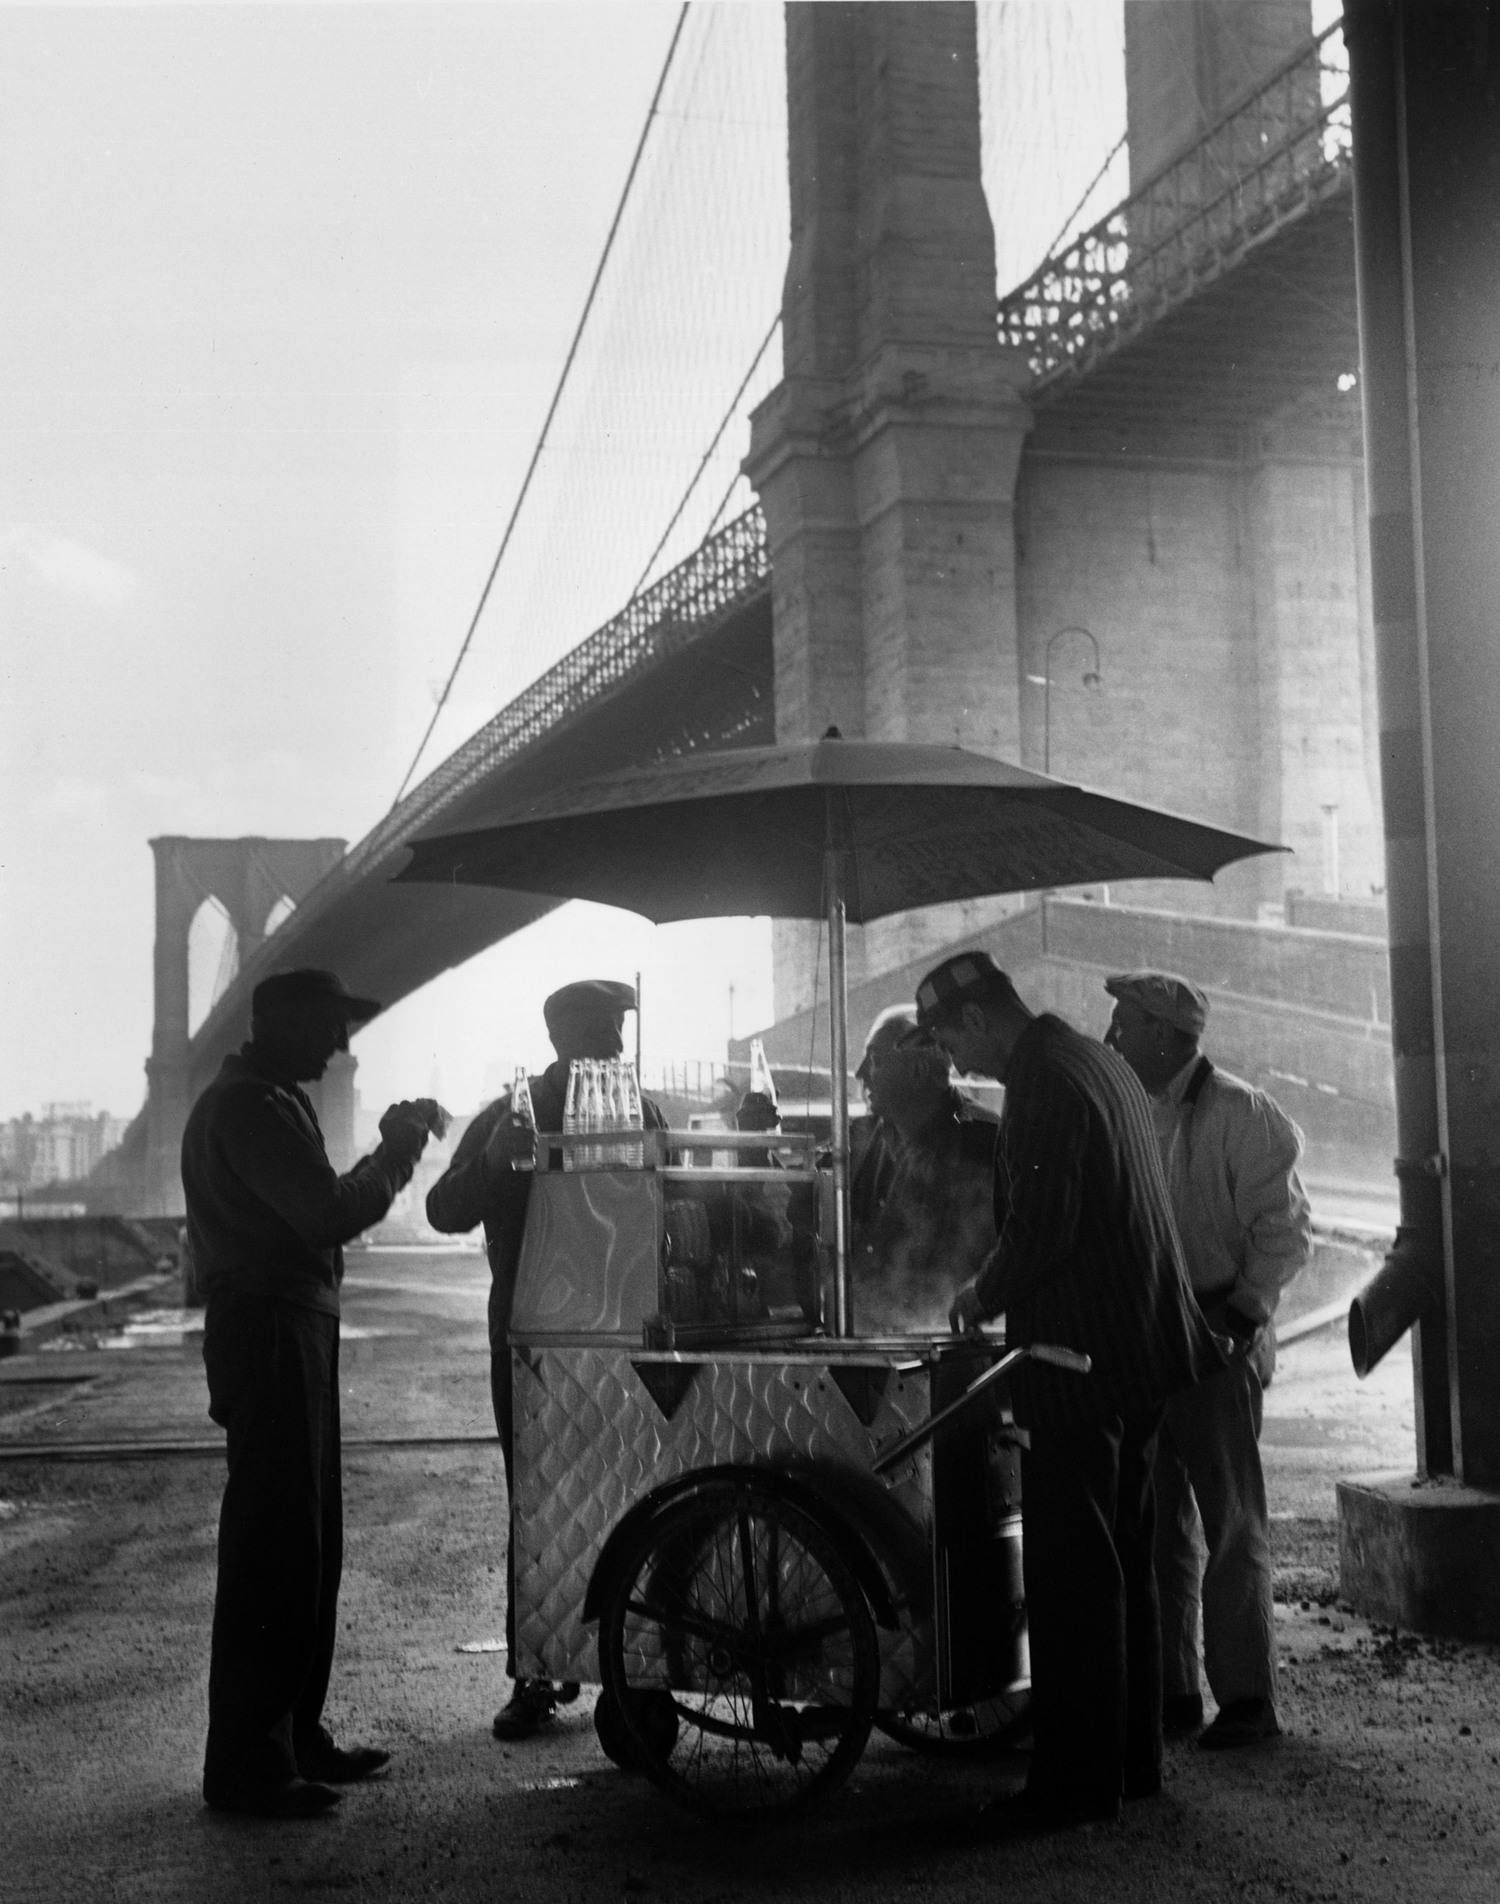 A group of workers getting refreshments from a portable snack stand underneath Brooklyn Bridge.